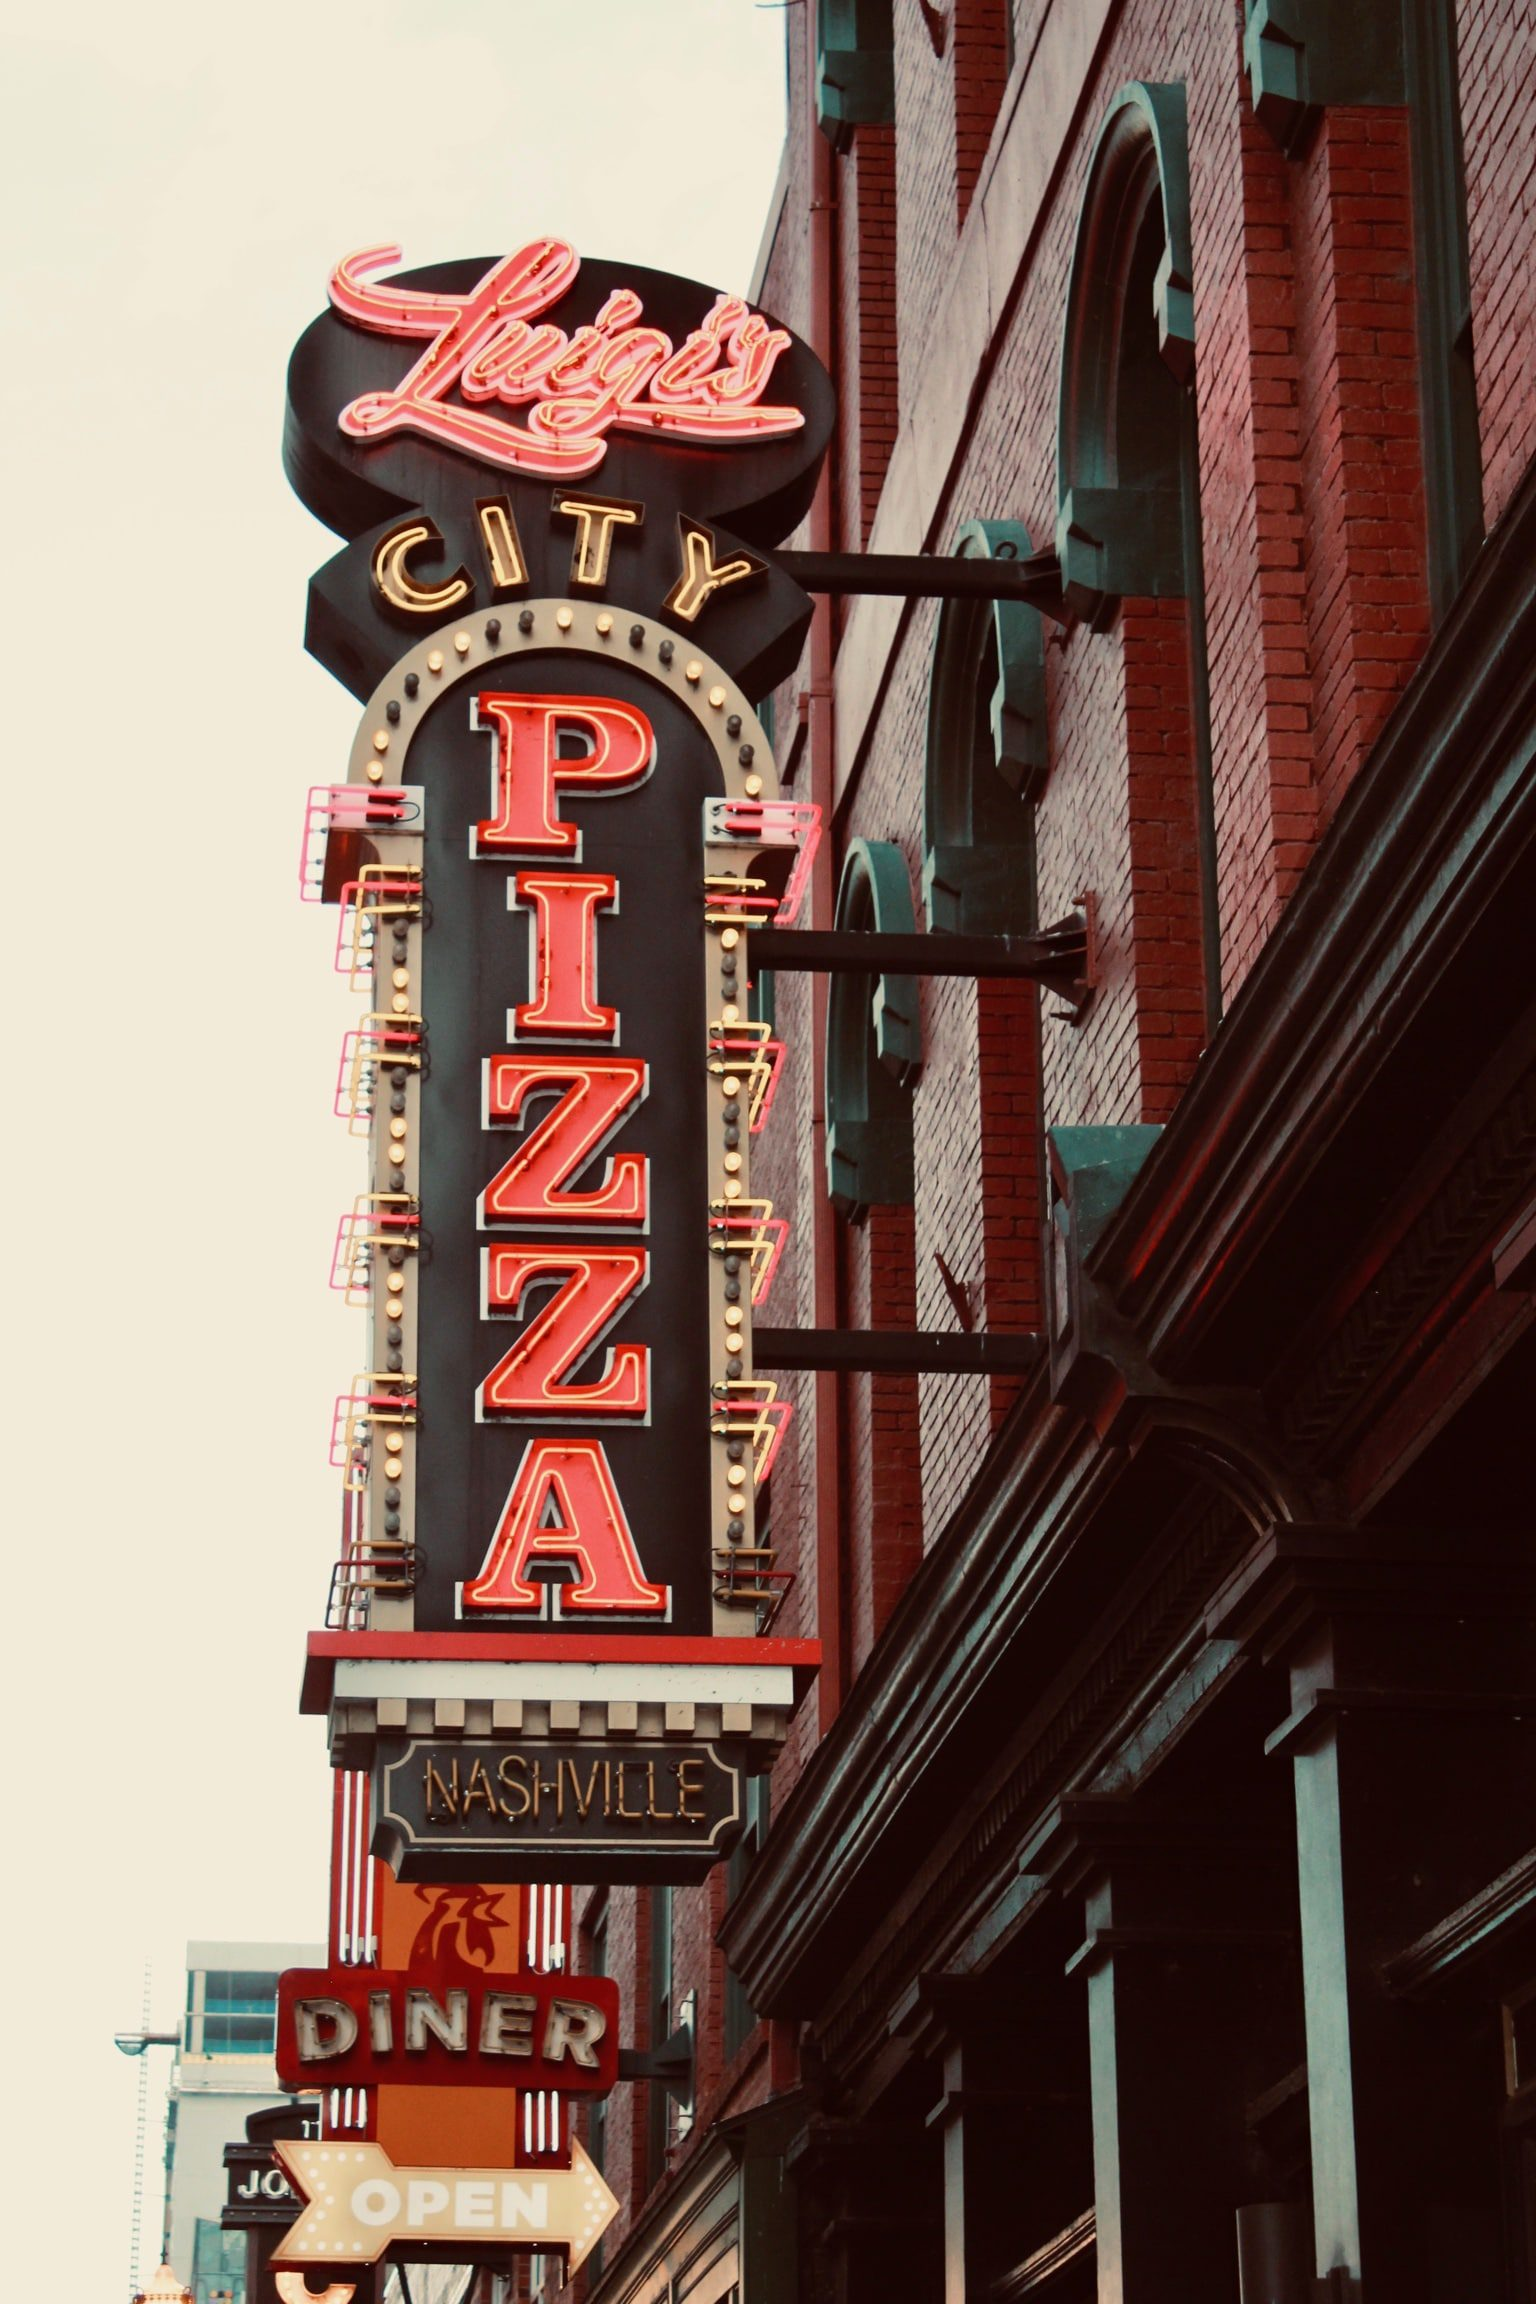 pizza restaurant sign in Nashville with led conversion